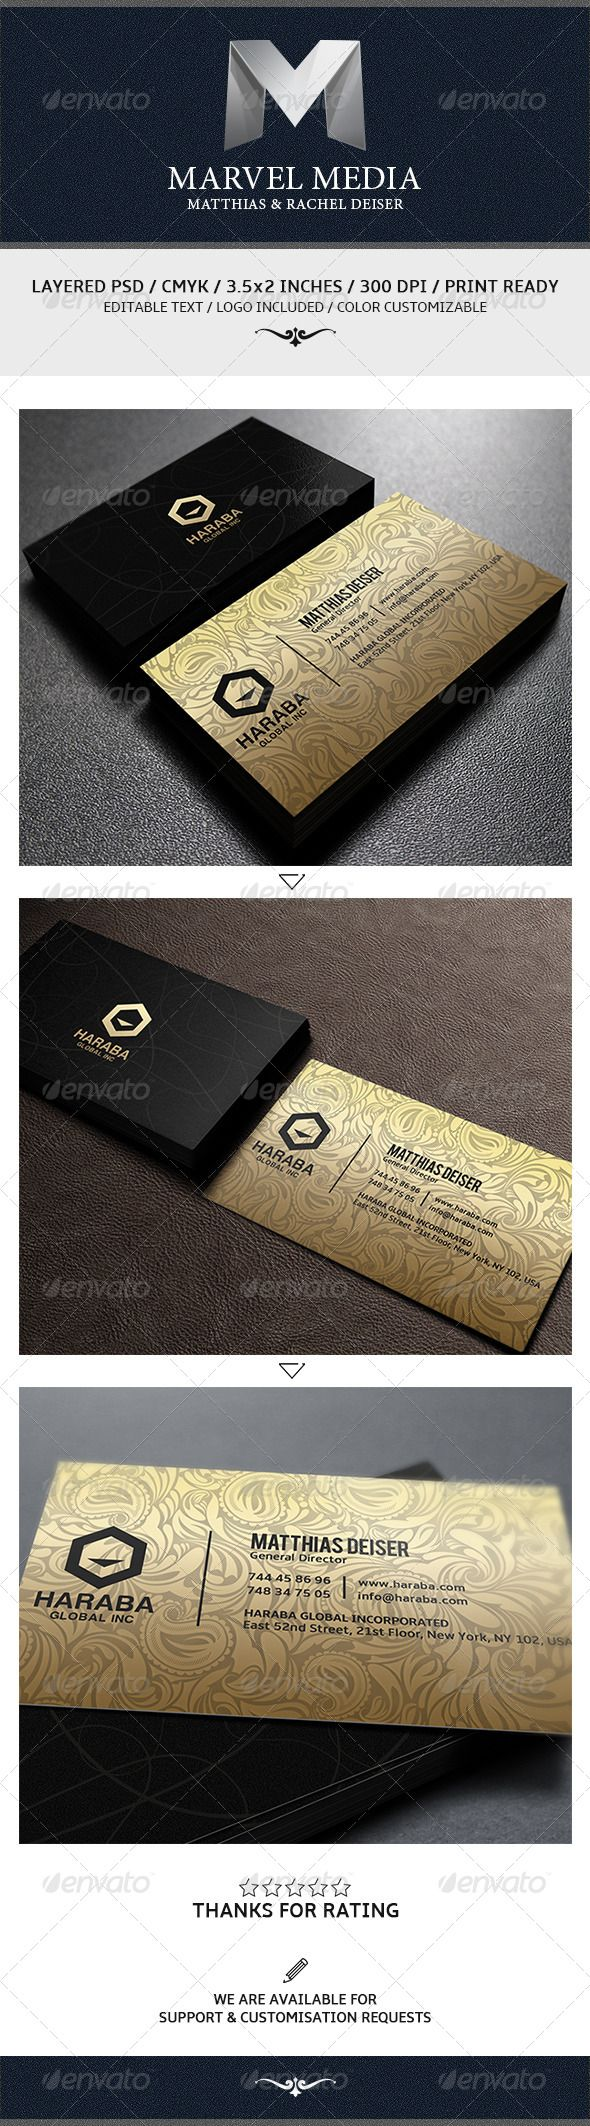 1676 best best business cards on pinterest images on pinterest 1676 best best business cards on pinterest images on pinterest corporate identity business branding and cards magicingreecefo Choice Image